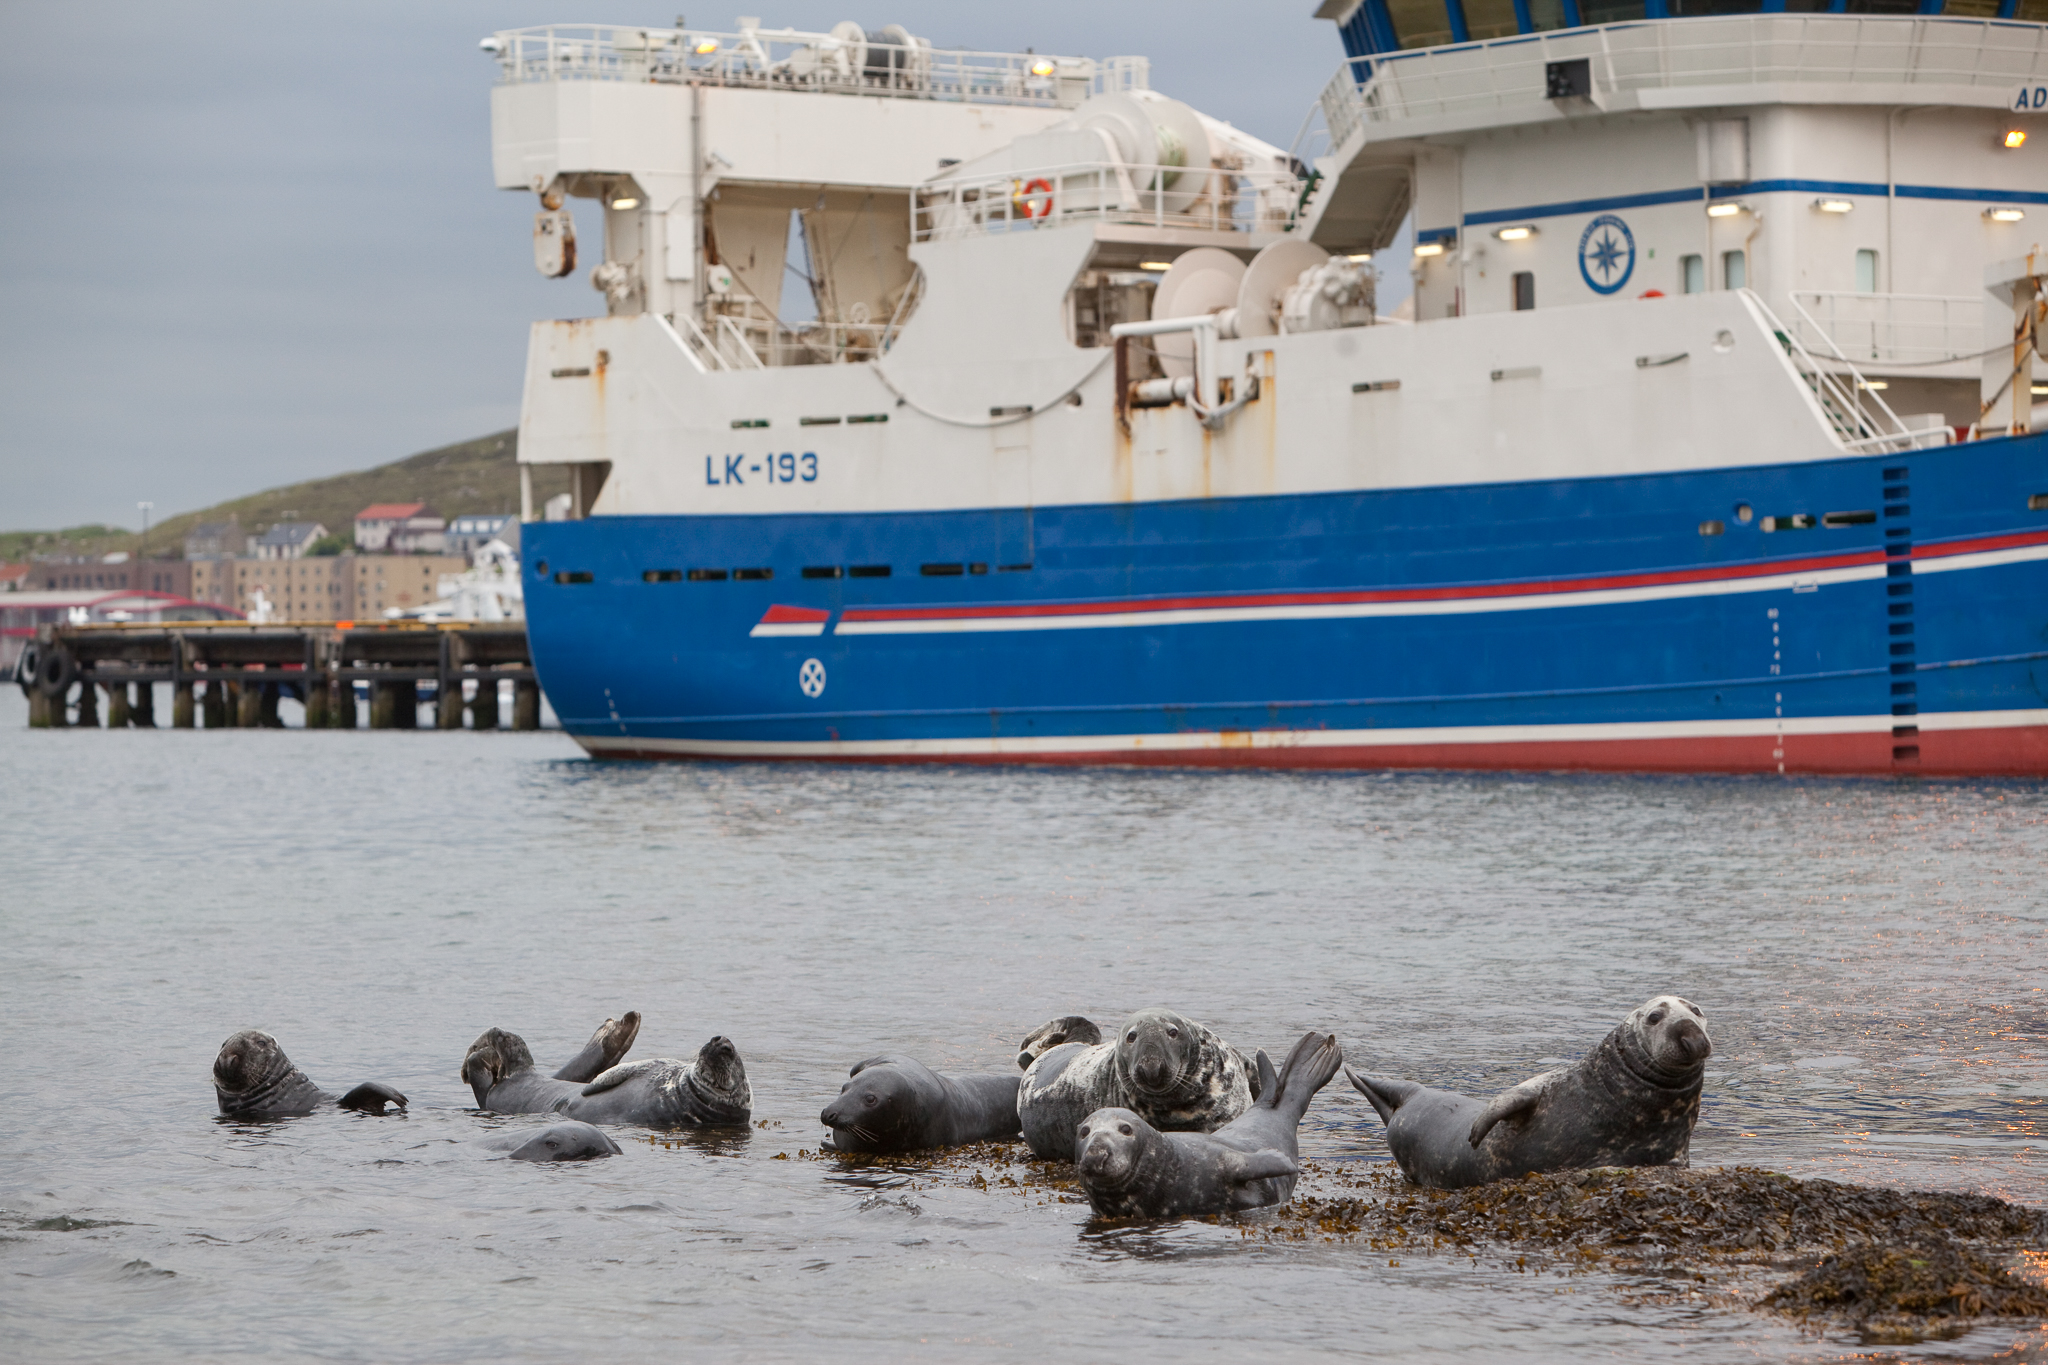 Ship traffic is one of many factors blamed for a rise in seal mortality in the U.K. Here, seals haul out in a fishing harbor with ferry in the background, Lerwick, Shetland Isles, Scotland. Photo by Peter Cairns.